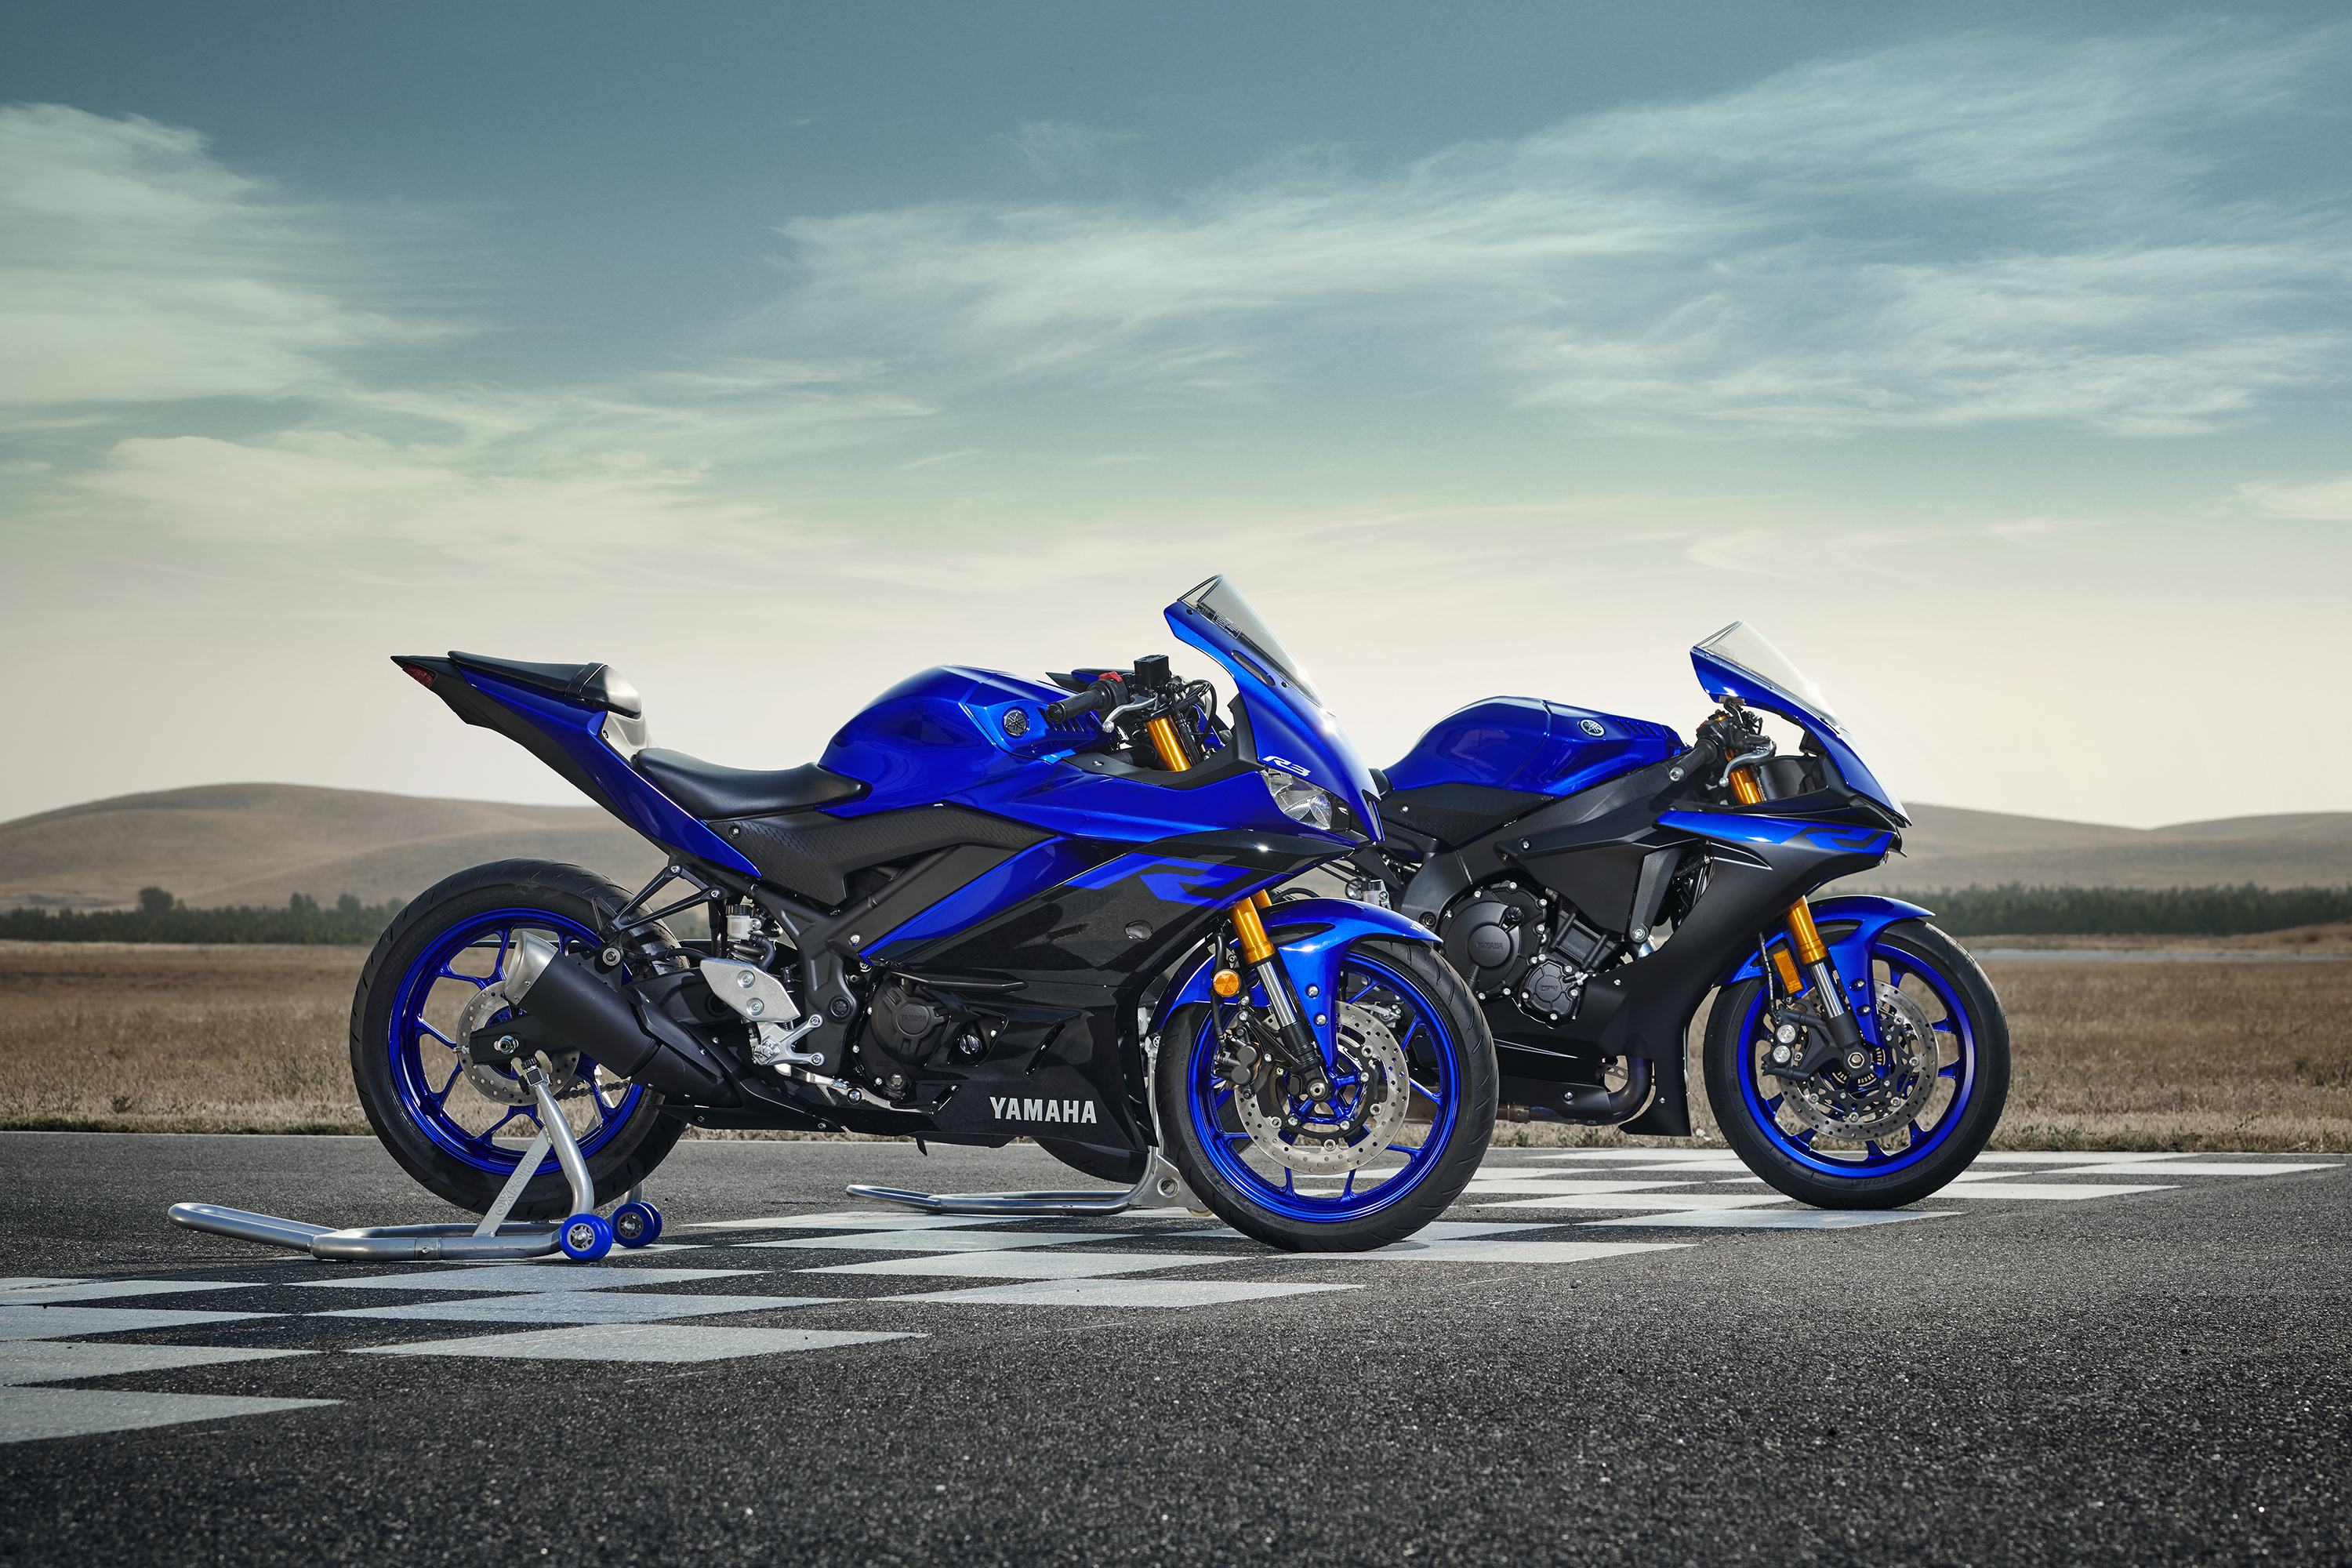 Motorcycle Com 2019 Yamaha Yzf R3 Review Ninjette Org